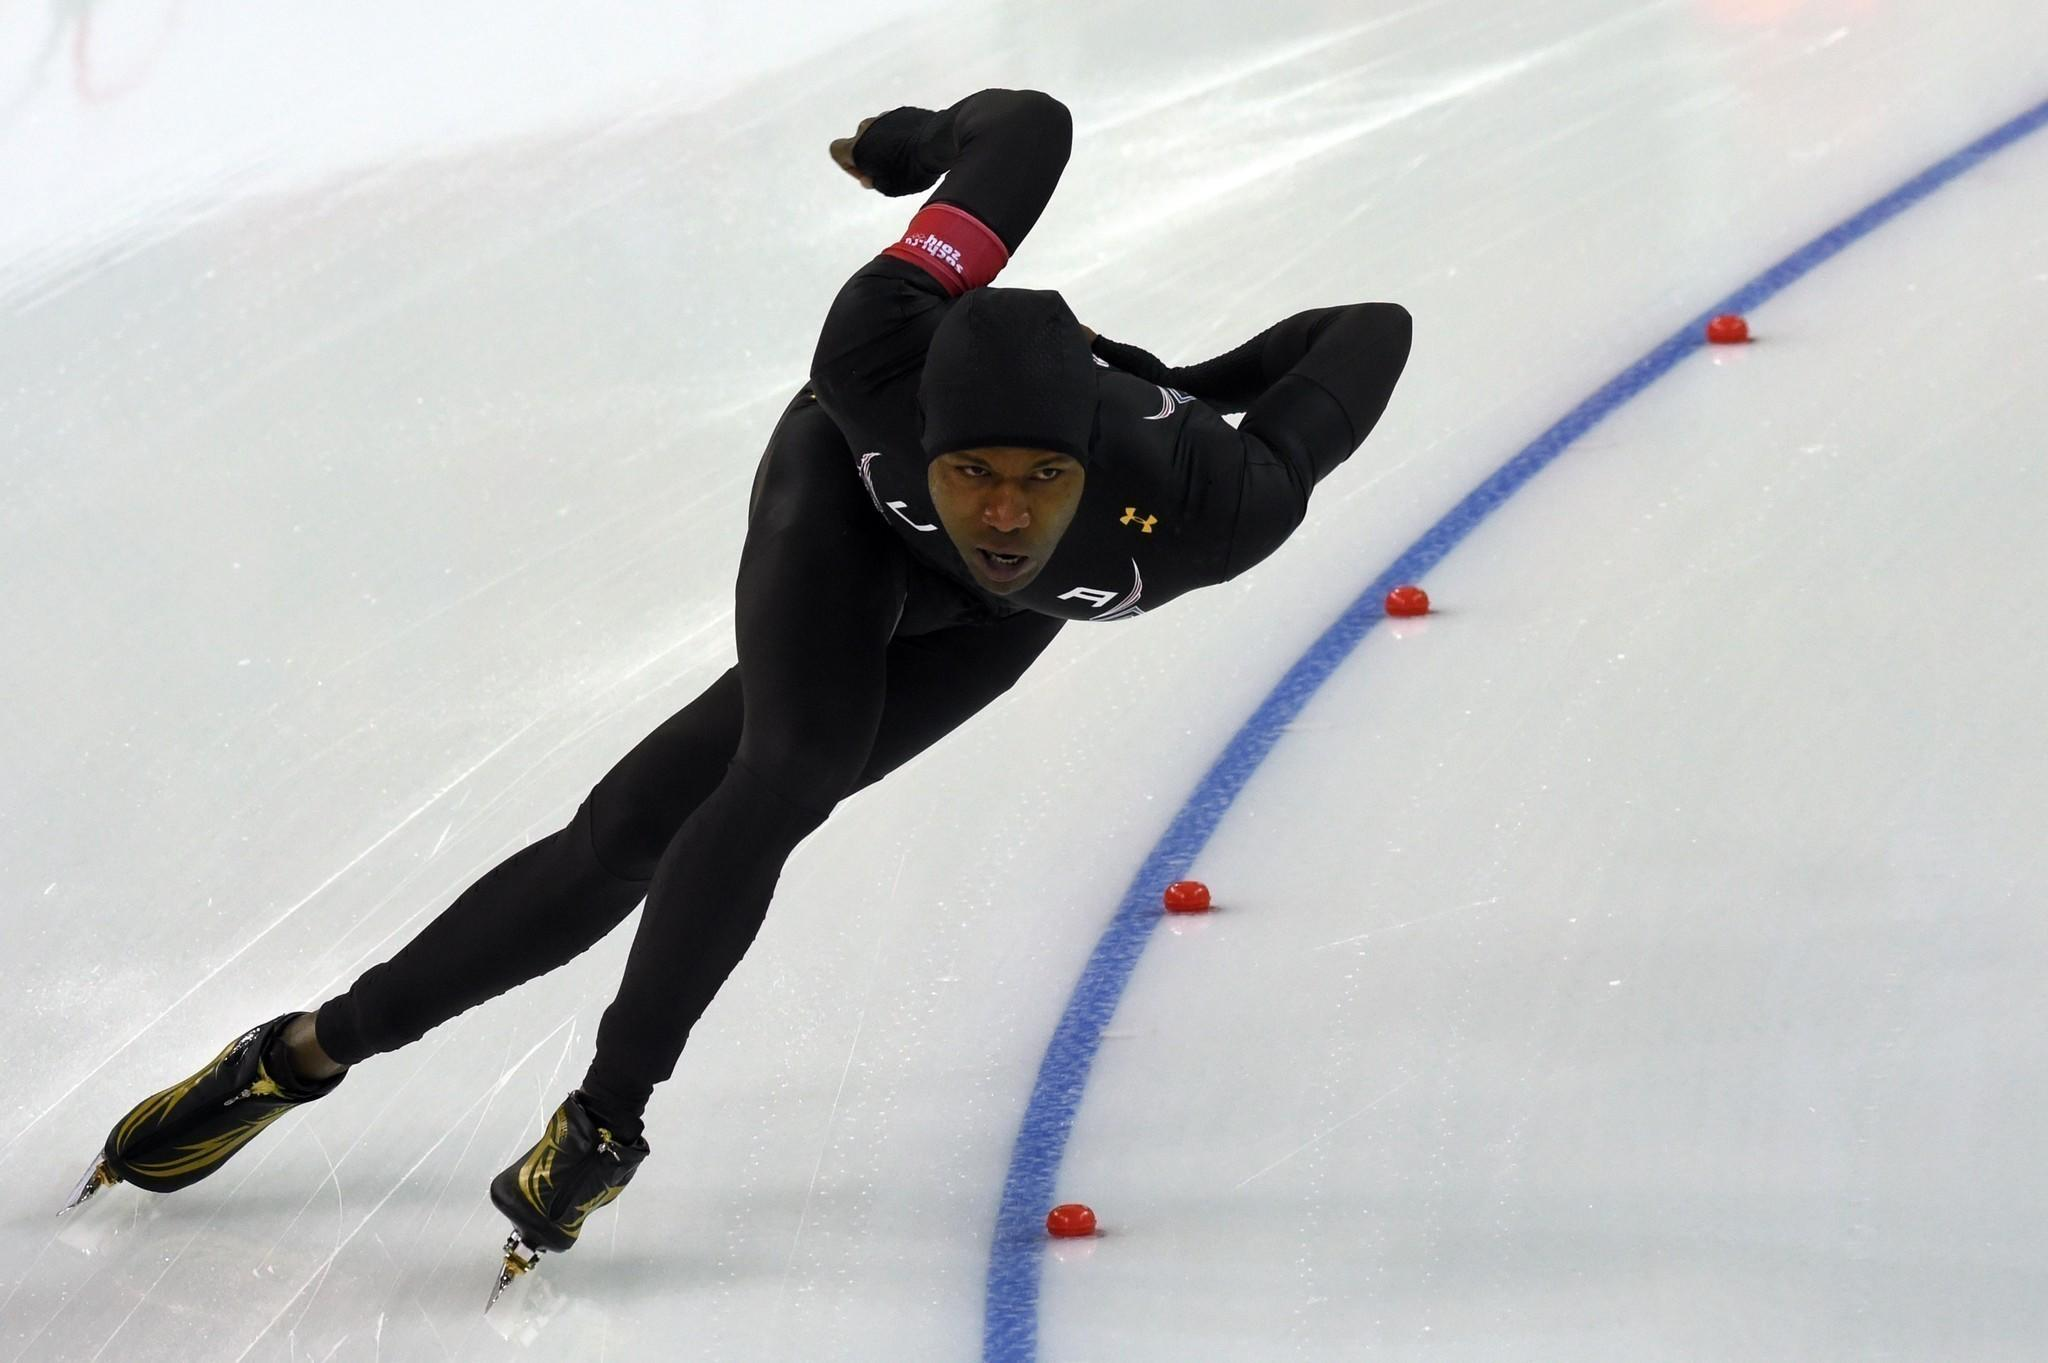 US Shani Davis competes in the the Men's Speed Skating 1000 m at the Adler Arena during the Sochi Winter Olympics on February 12, 2014. AFP PHOTO / DAMIEN MEYERDAMIEN MEYER/AFP/Getty Images ORG XMIT: 461431465